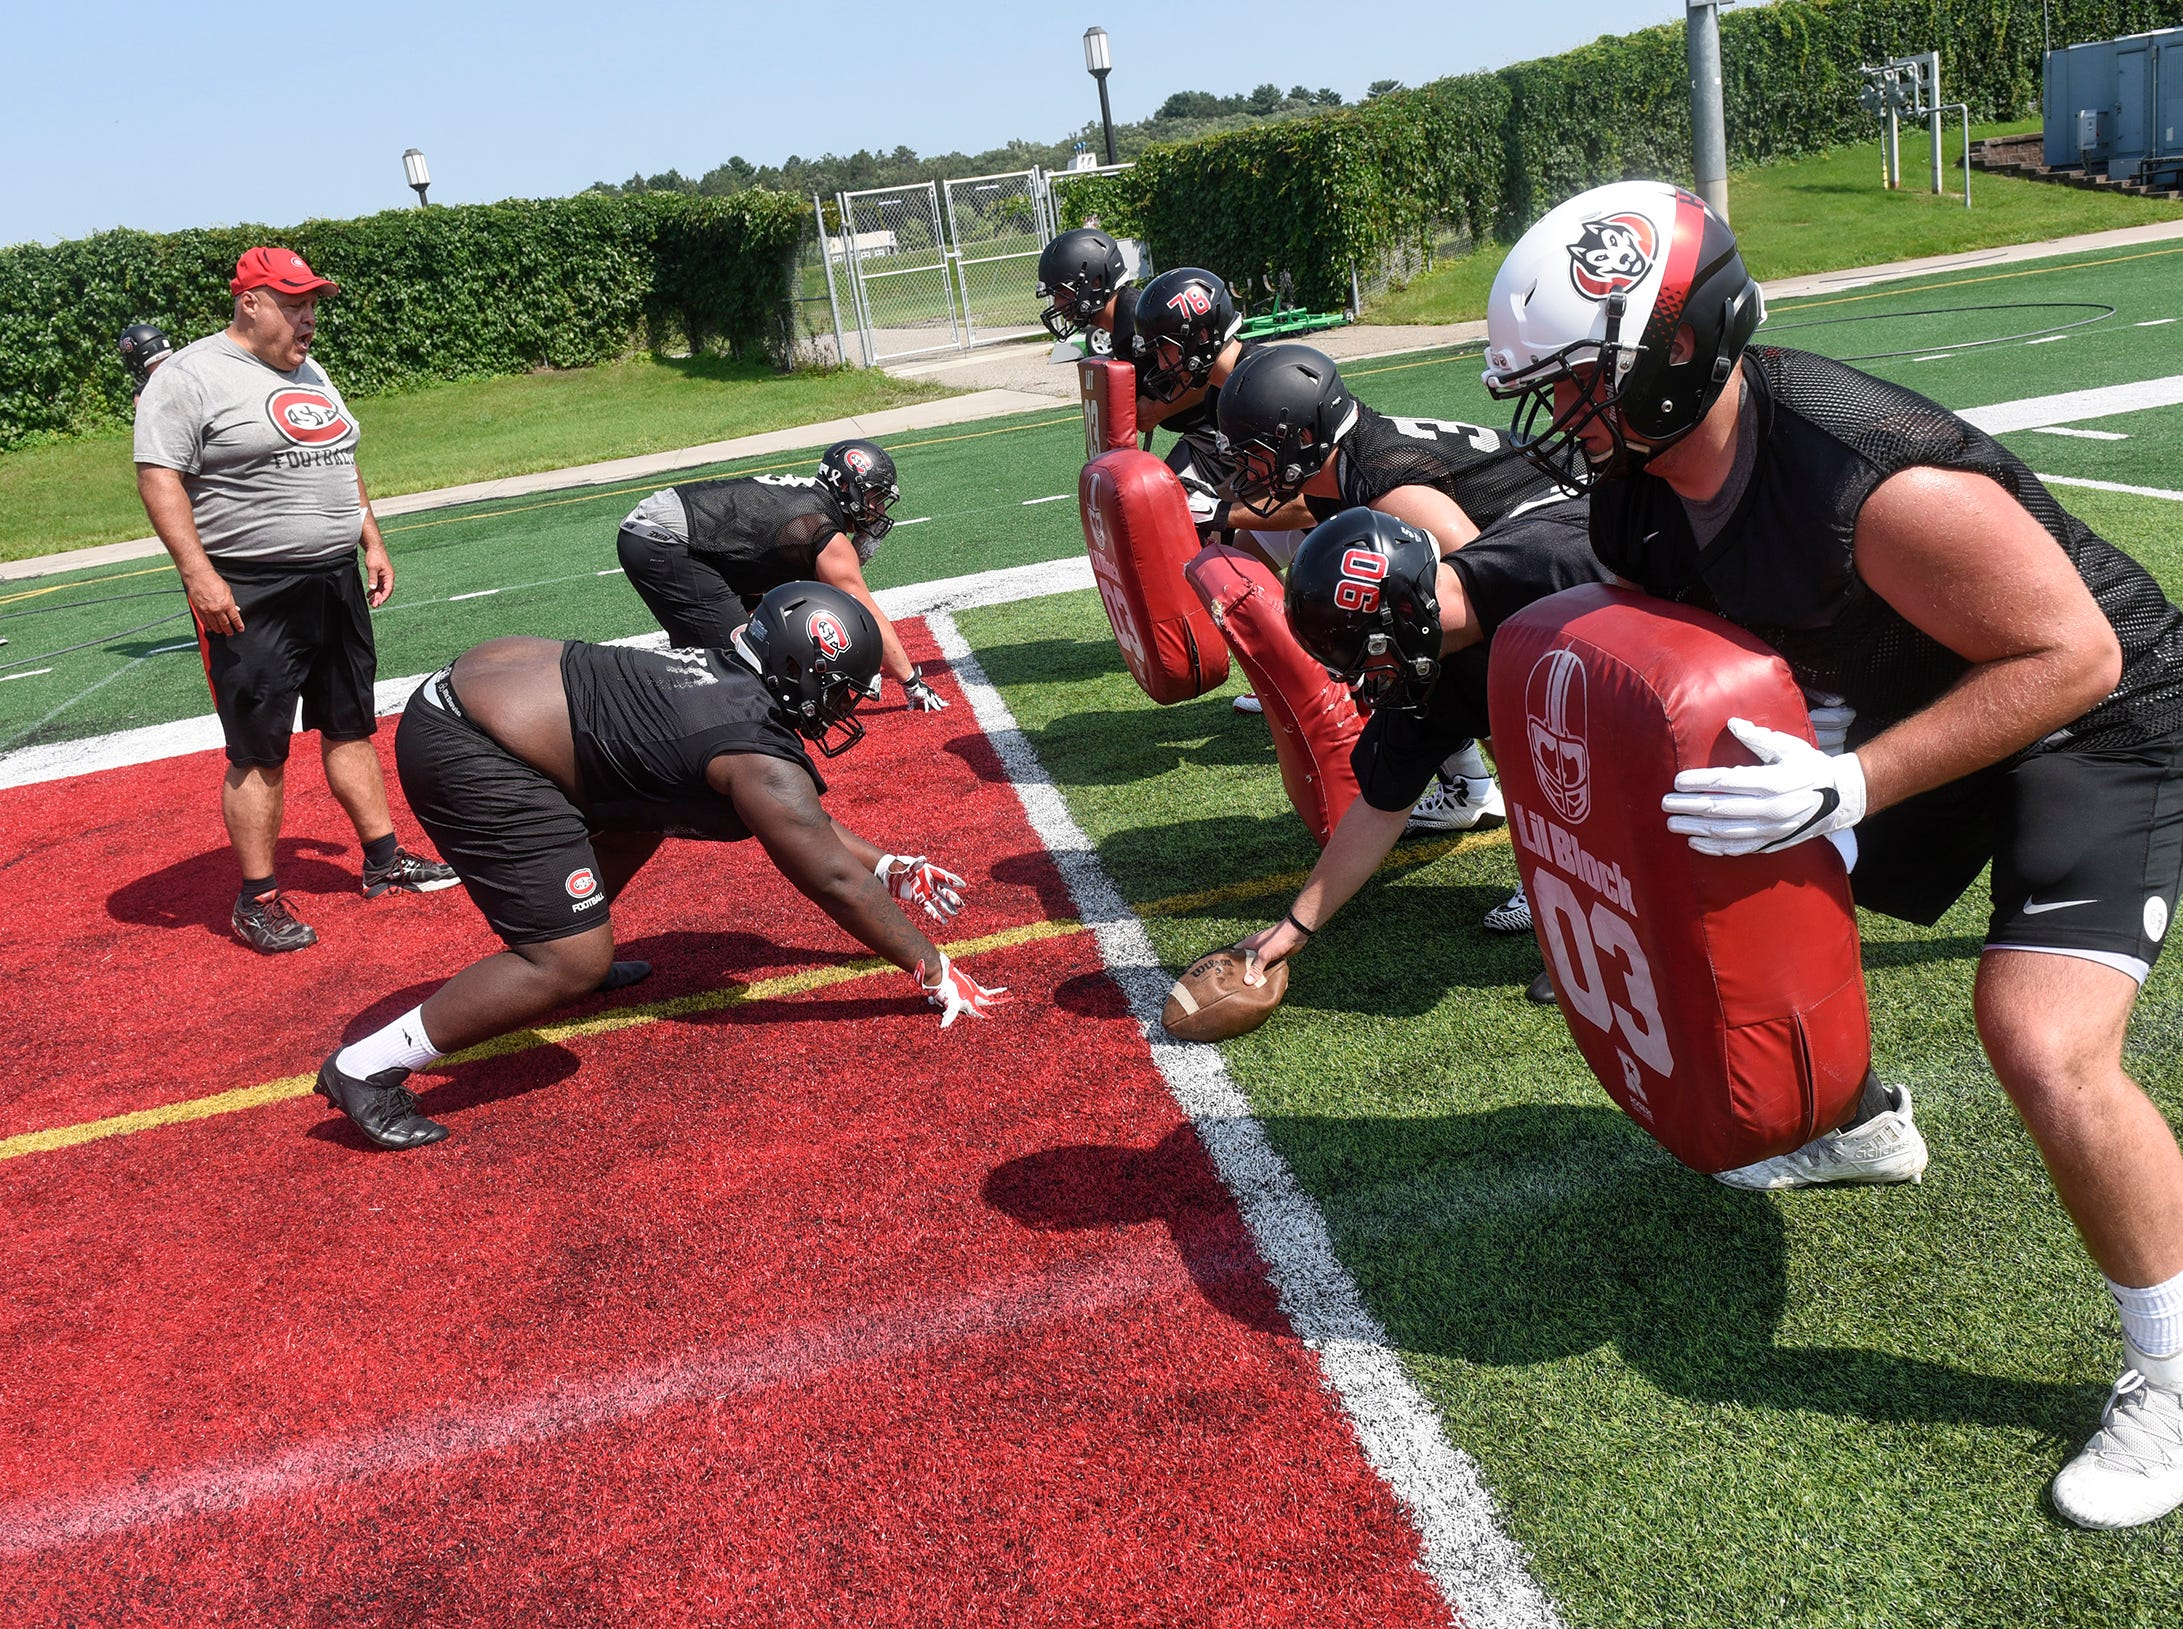 Players line up for a drill during practice Wednesday, Aug. 8, at Husky Stadium in St. Cloud.